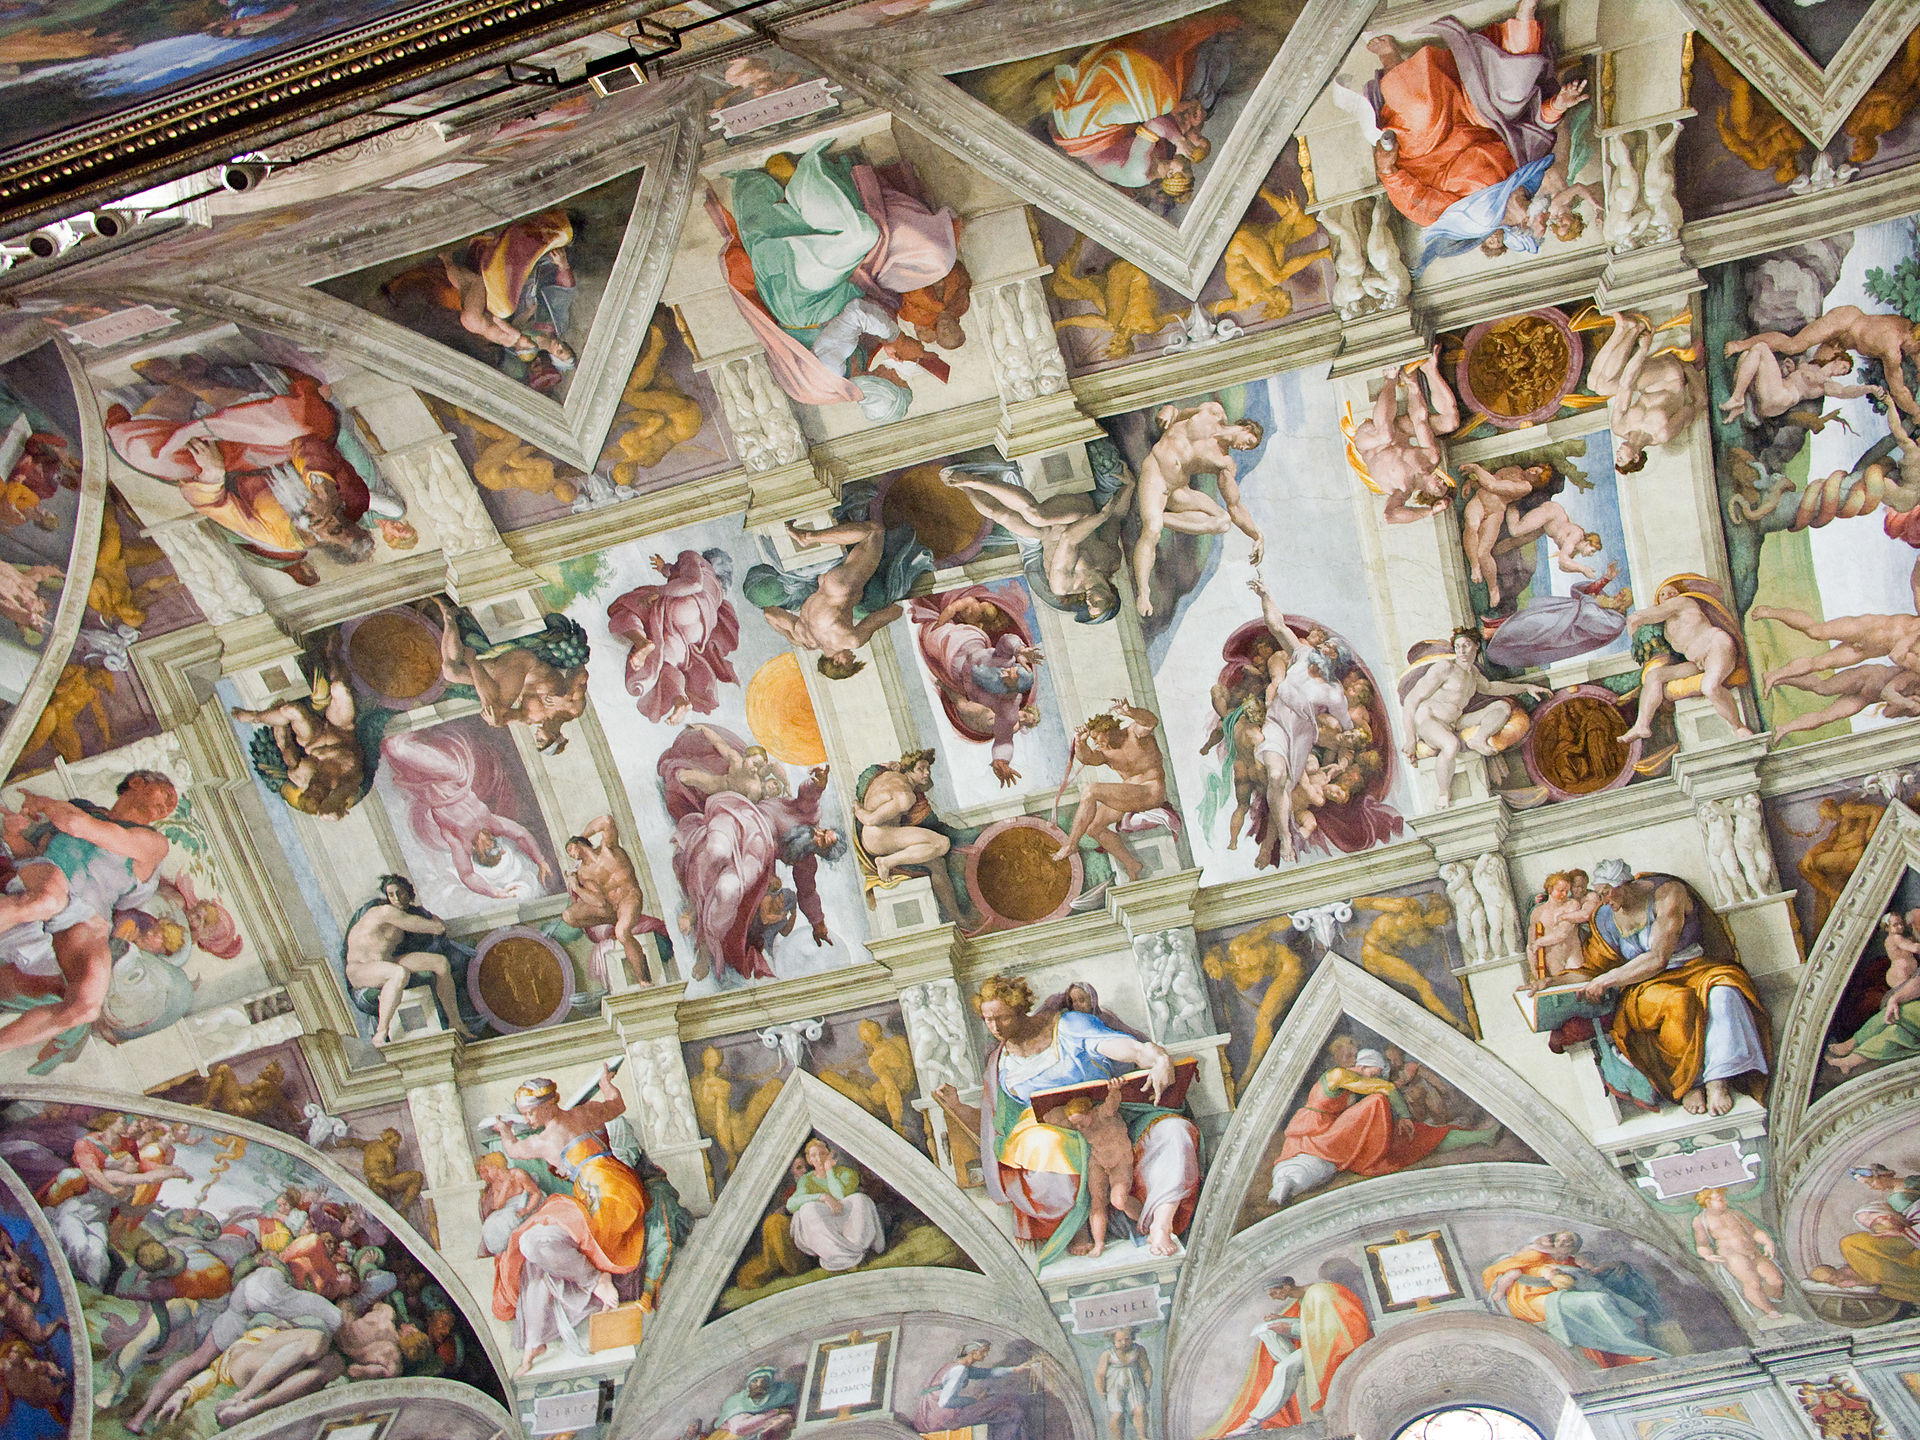 Michelangelo painted the ceiling of the  Sistine Chapel ; the work took approximately four years to complete (1508–12)米開郞基羅用了四年的時間(1508-12)來完成西斯廷天頂畫。(公共領域)